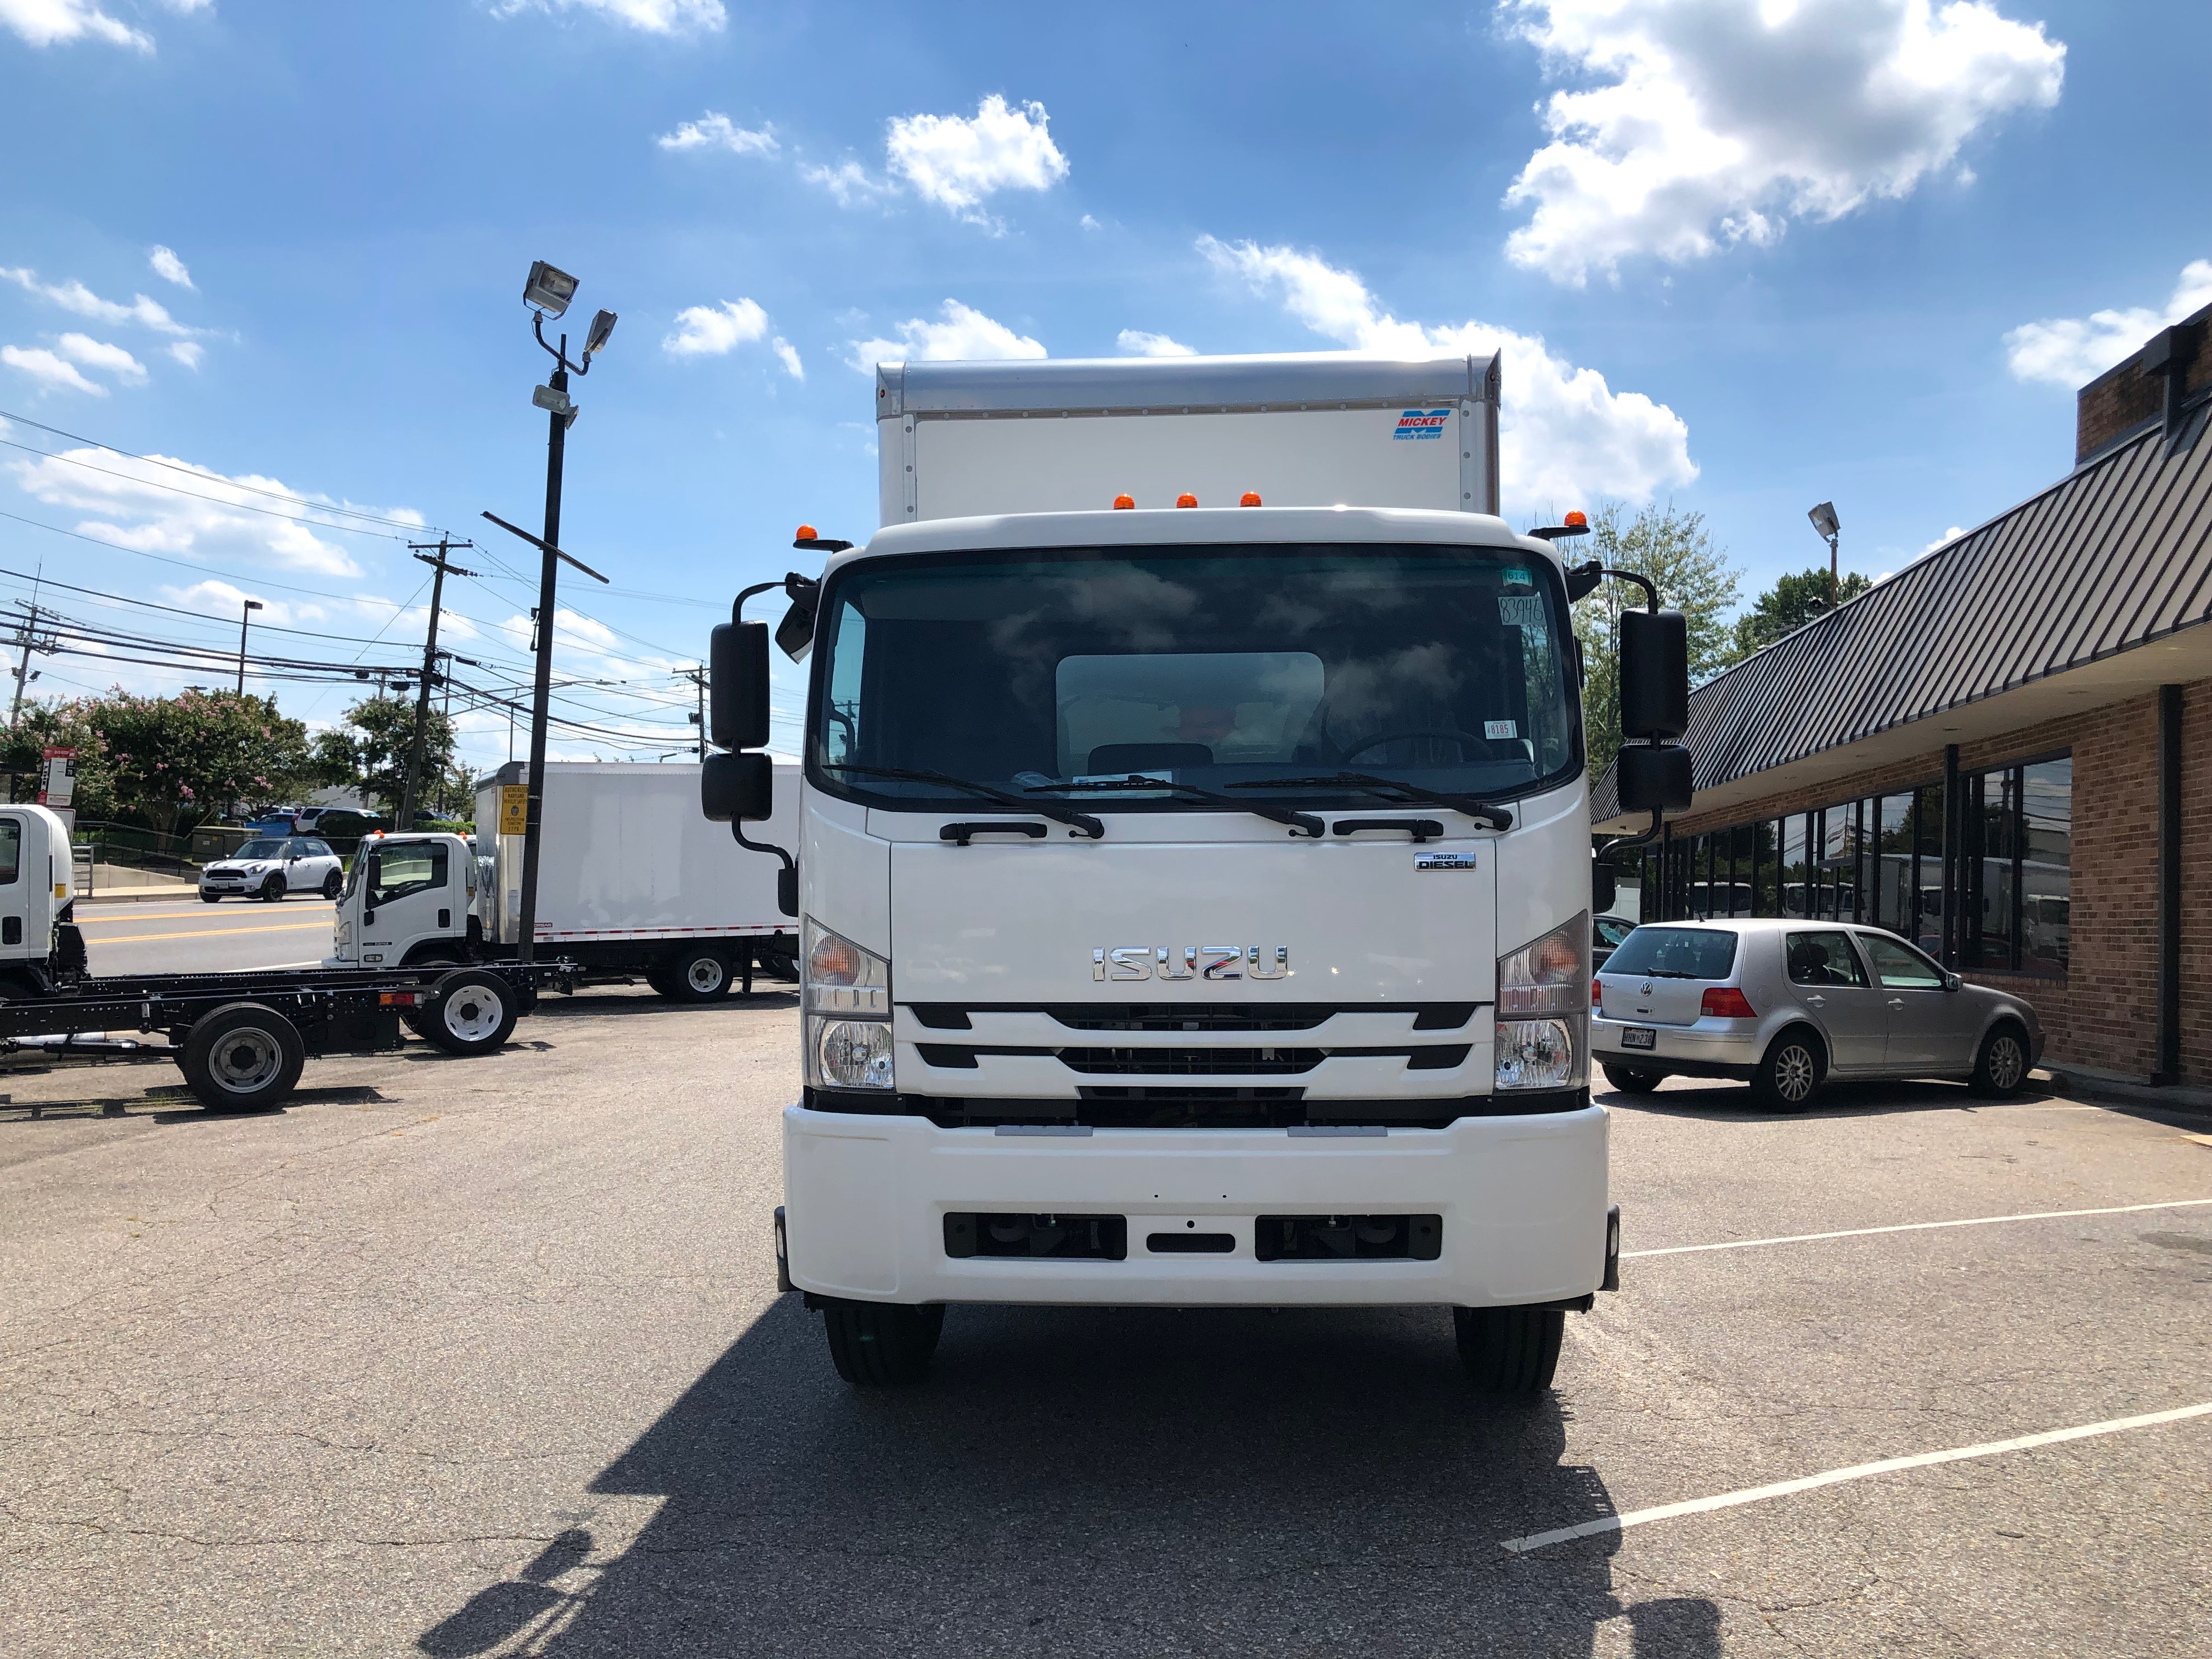 """2018 Isuzu FTR with a 24' Mickey Body and 212"""" Wheelbase, 3 Year Untimited mile Warranty, 3 Year 24hr roadside Assistance, IMG-8053-762x456"""